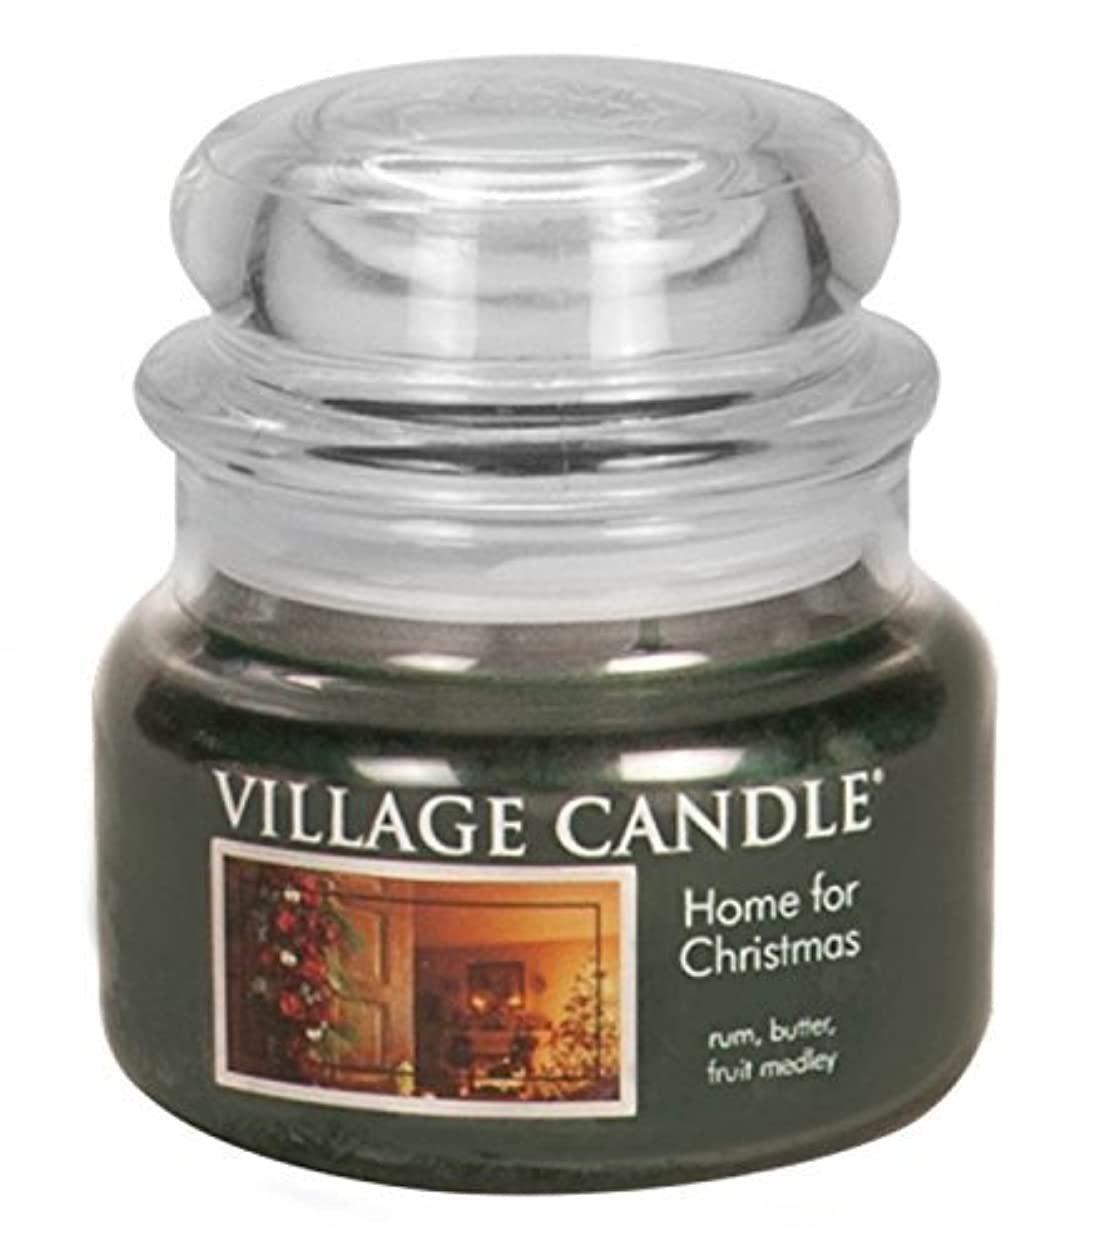 交渉するポータブル解くVillage Candle Home for Christmas 11 oz Glass Jar Scented Candle,Small [並行輸入品]